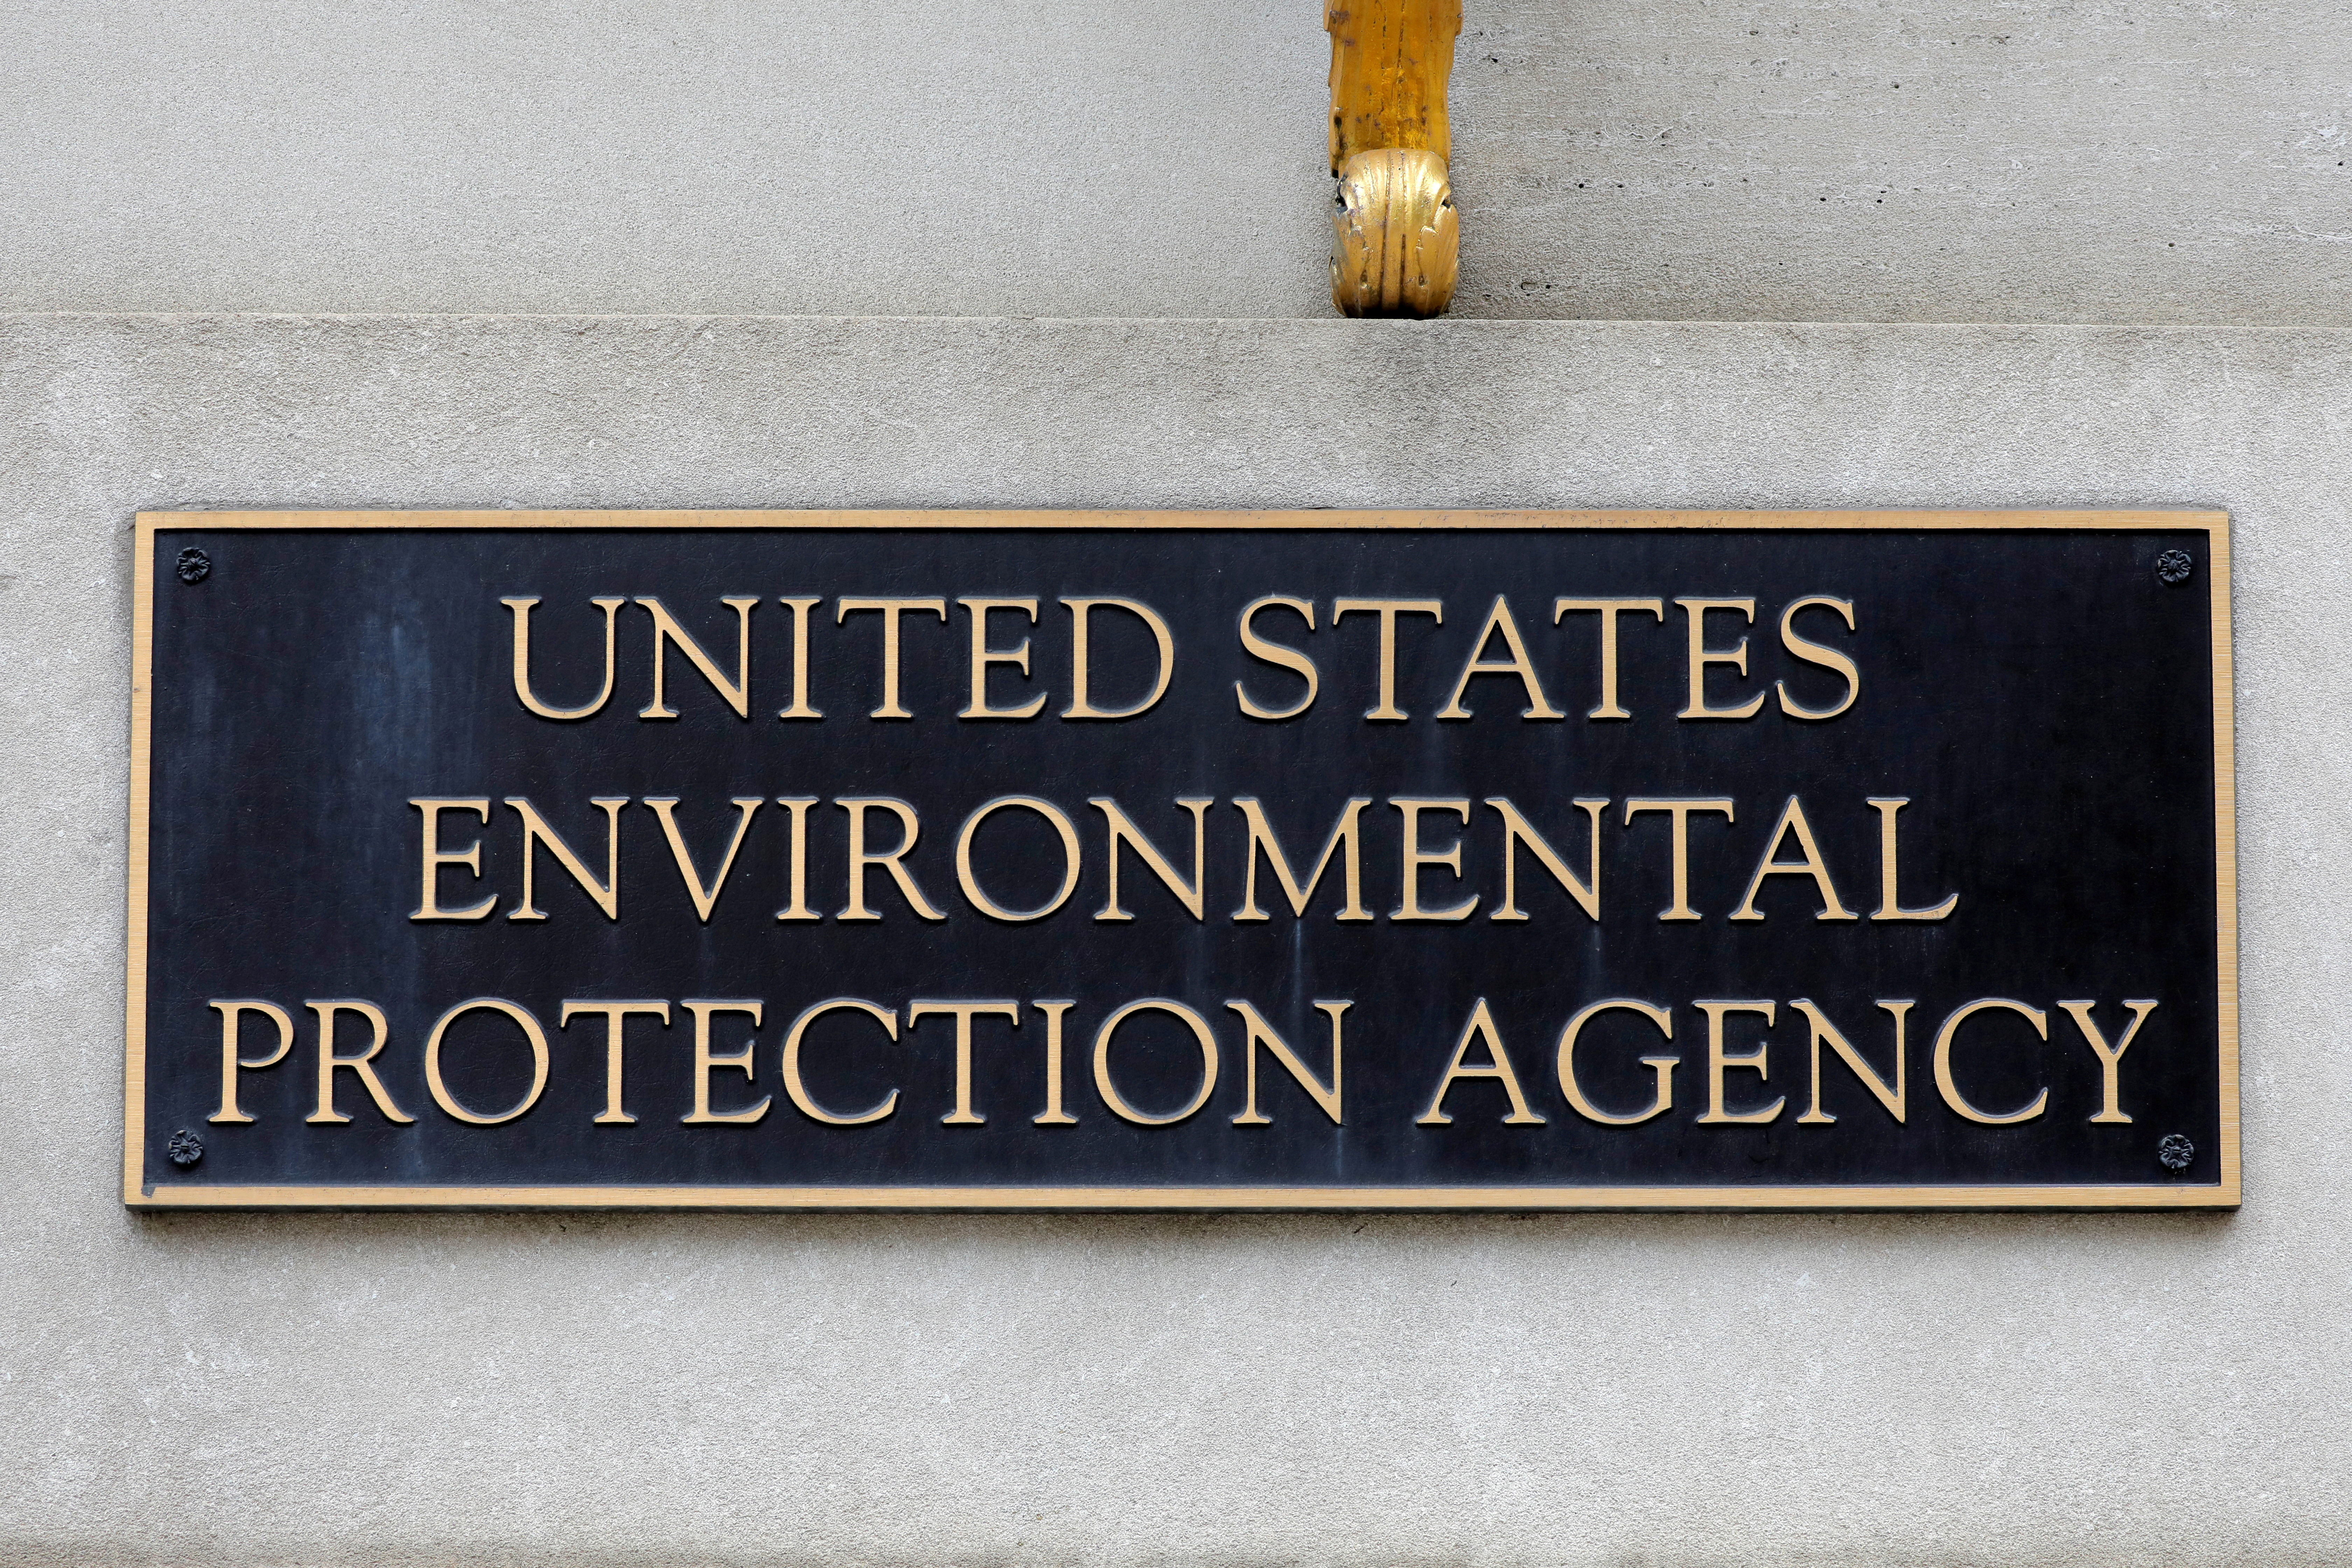 Signage is seen at the headquarters of the United States Environmental Protection Agency (EPA) in Washington, D.C., U.S., May 10, 2021. REUTERS/Andrew Kelly/File Photo